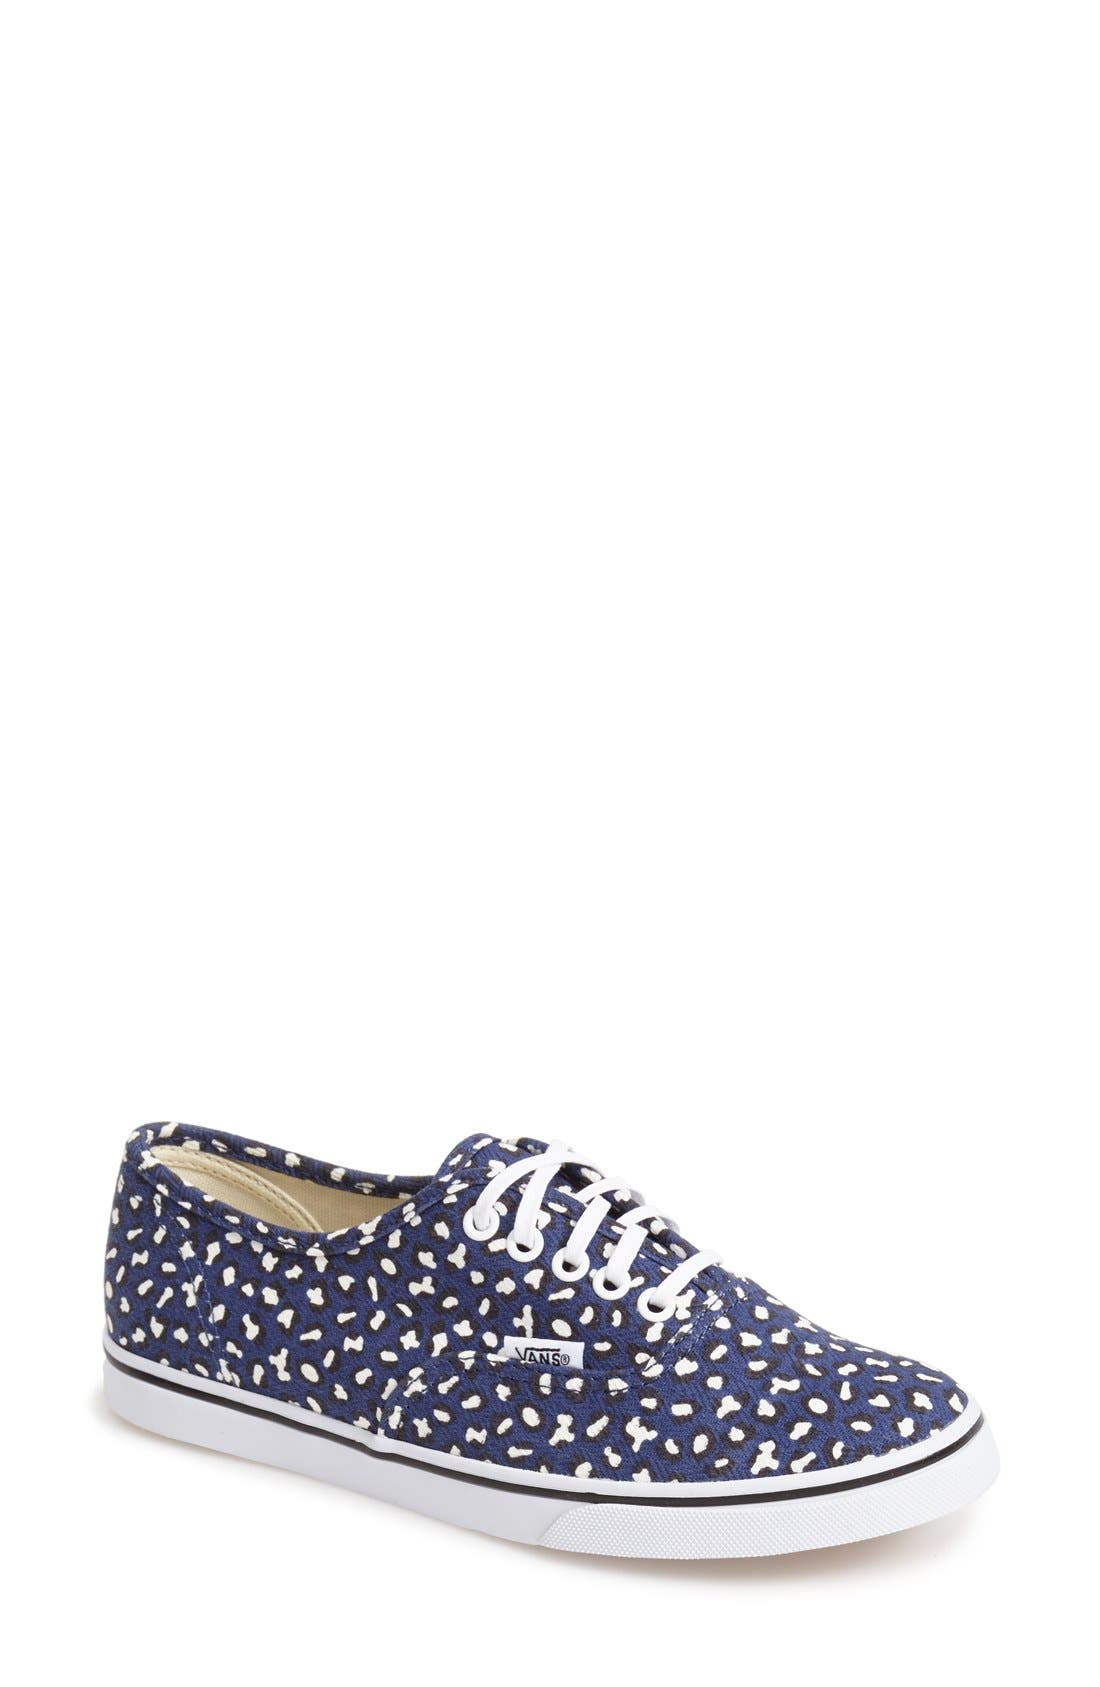 Alternate Image 1 Selected - Vans 'Herringbone Leopard - Lo Pro' Sneaker (Women)